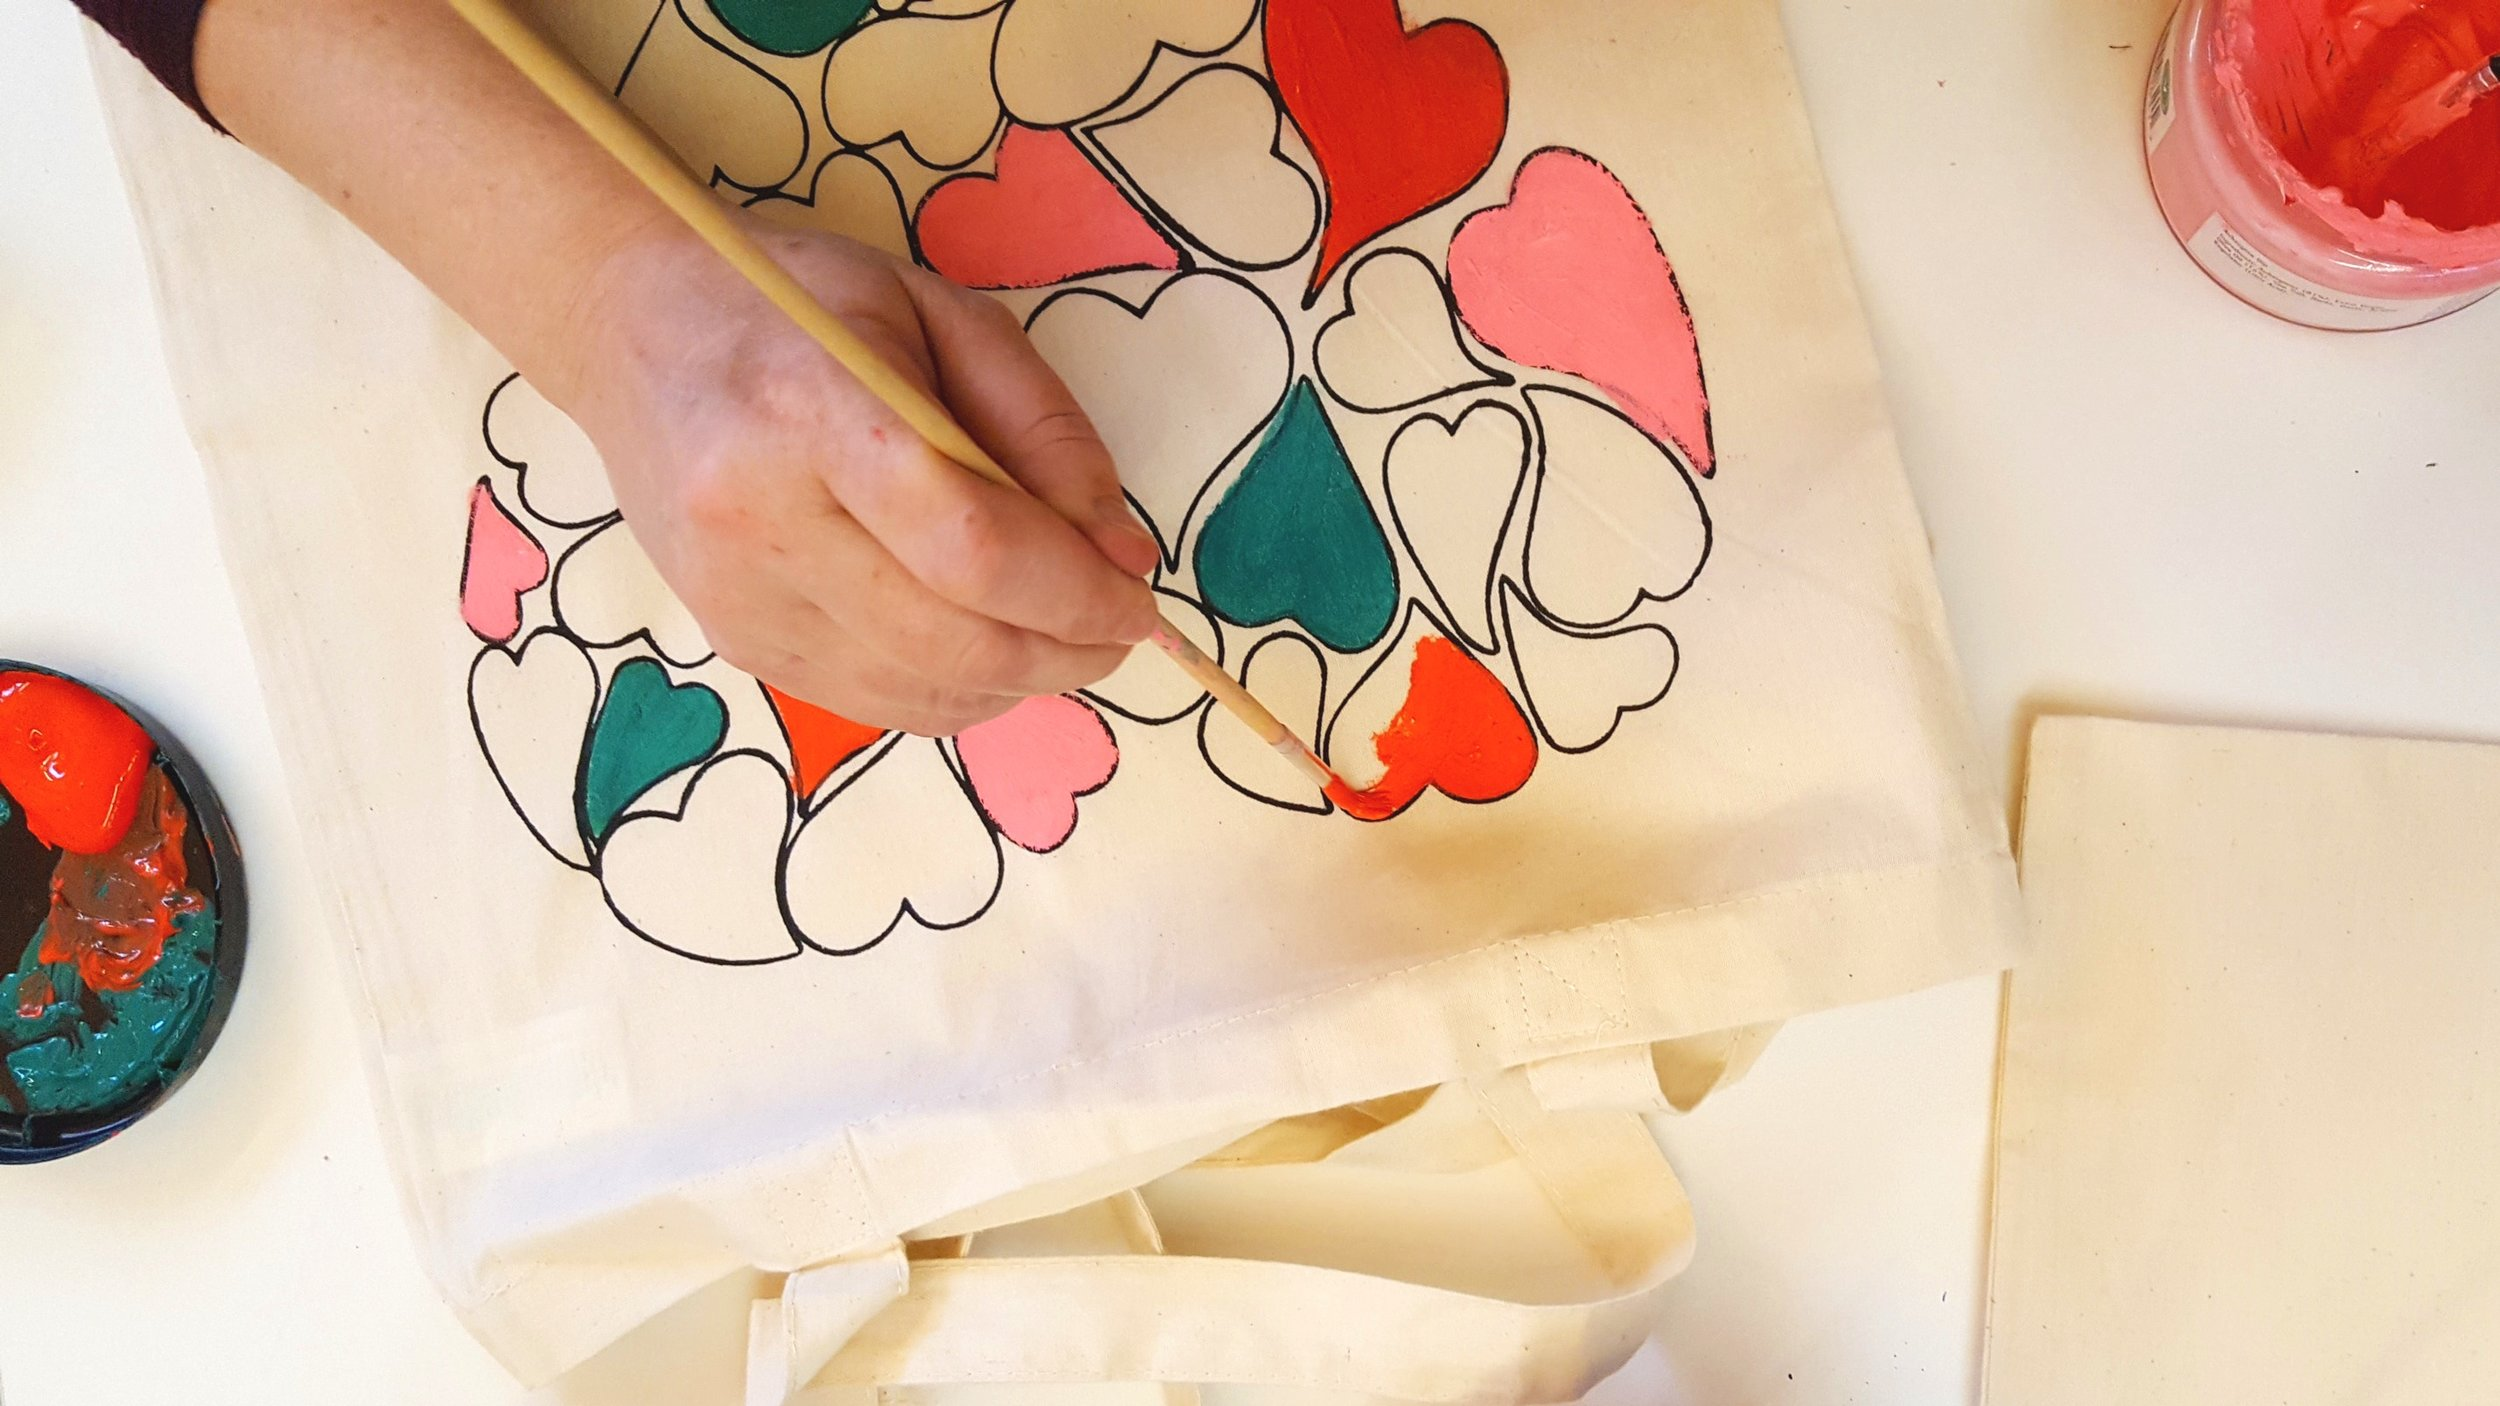 Bags of love. - Tote bag printing & painting activity